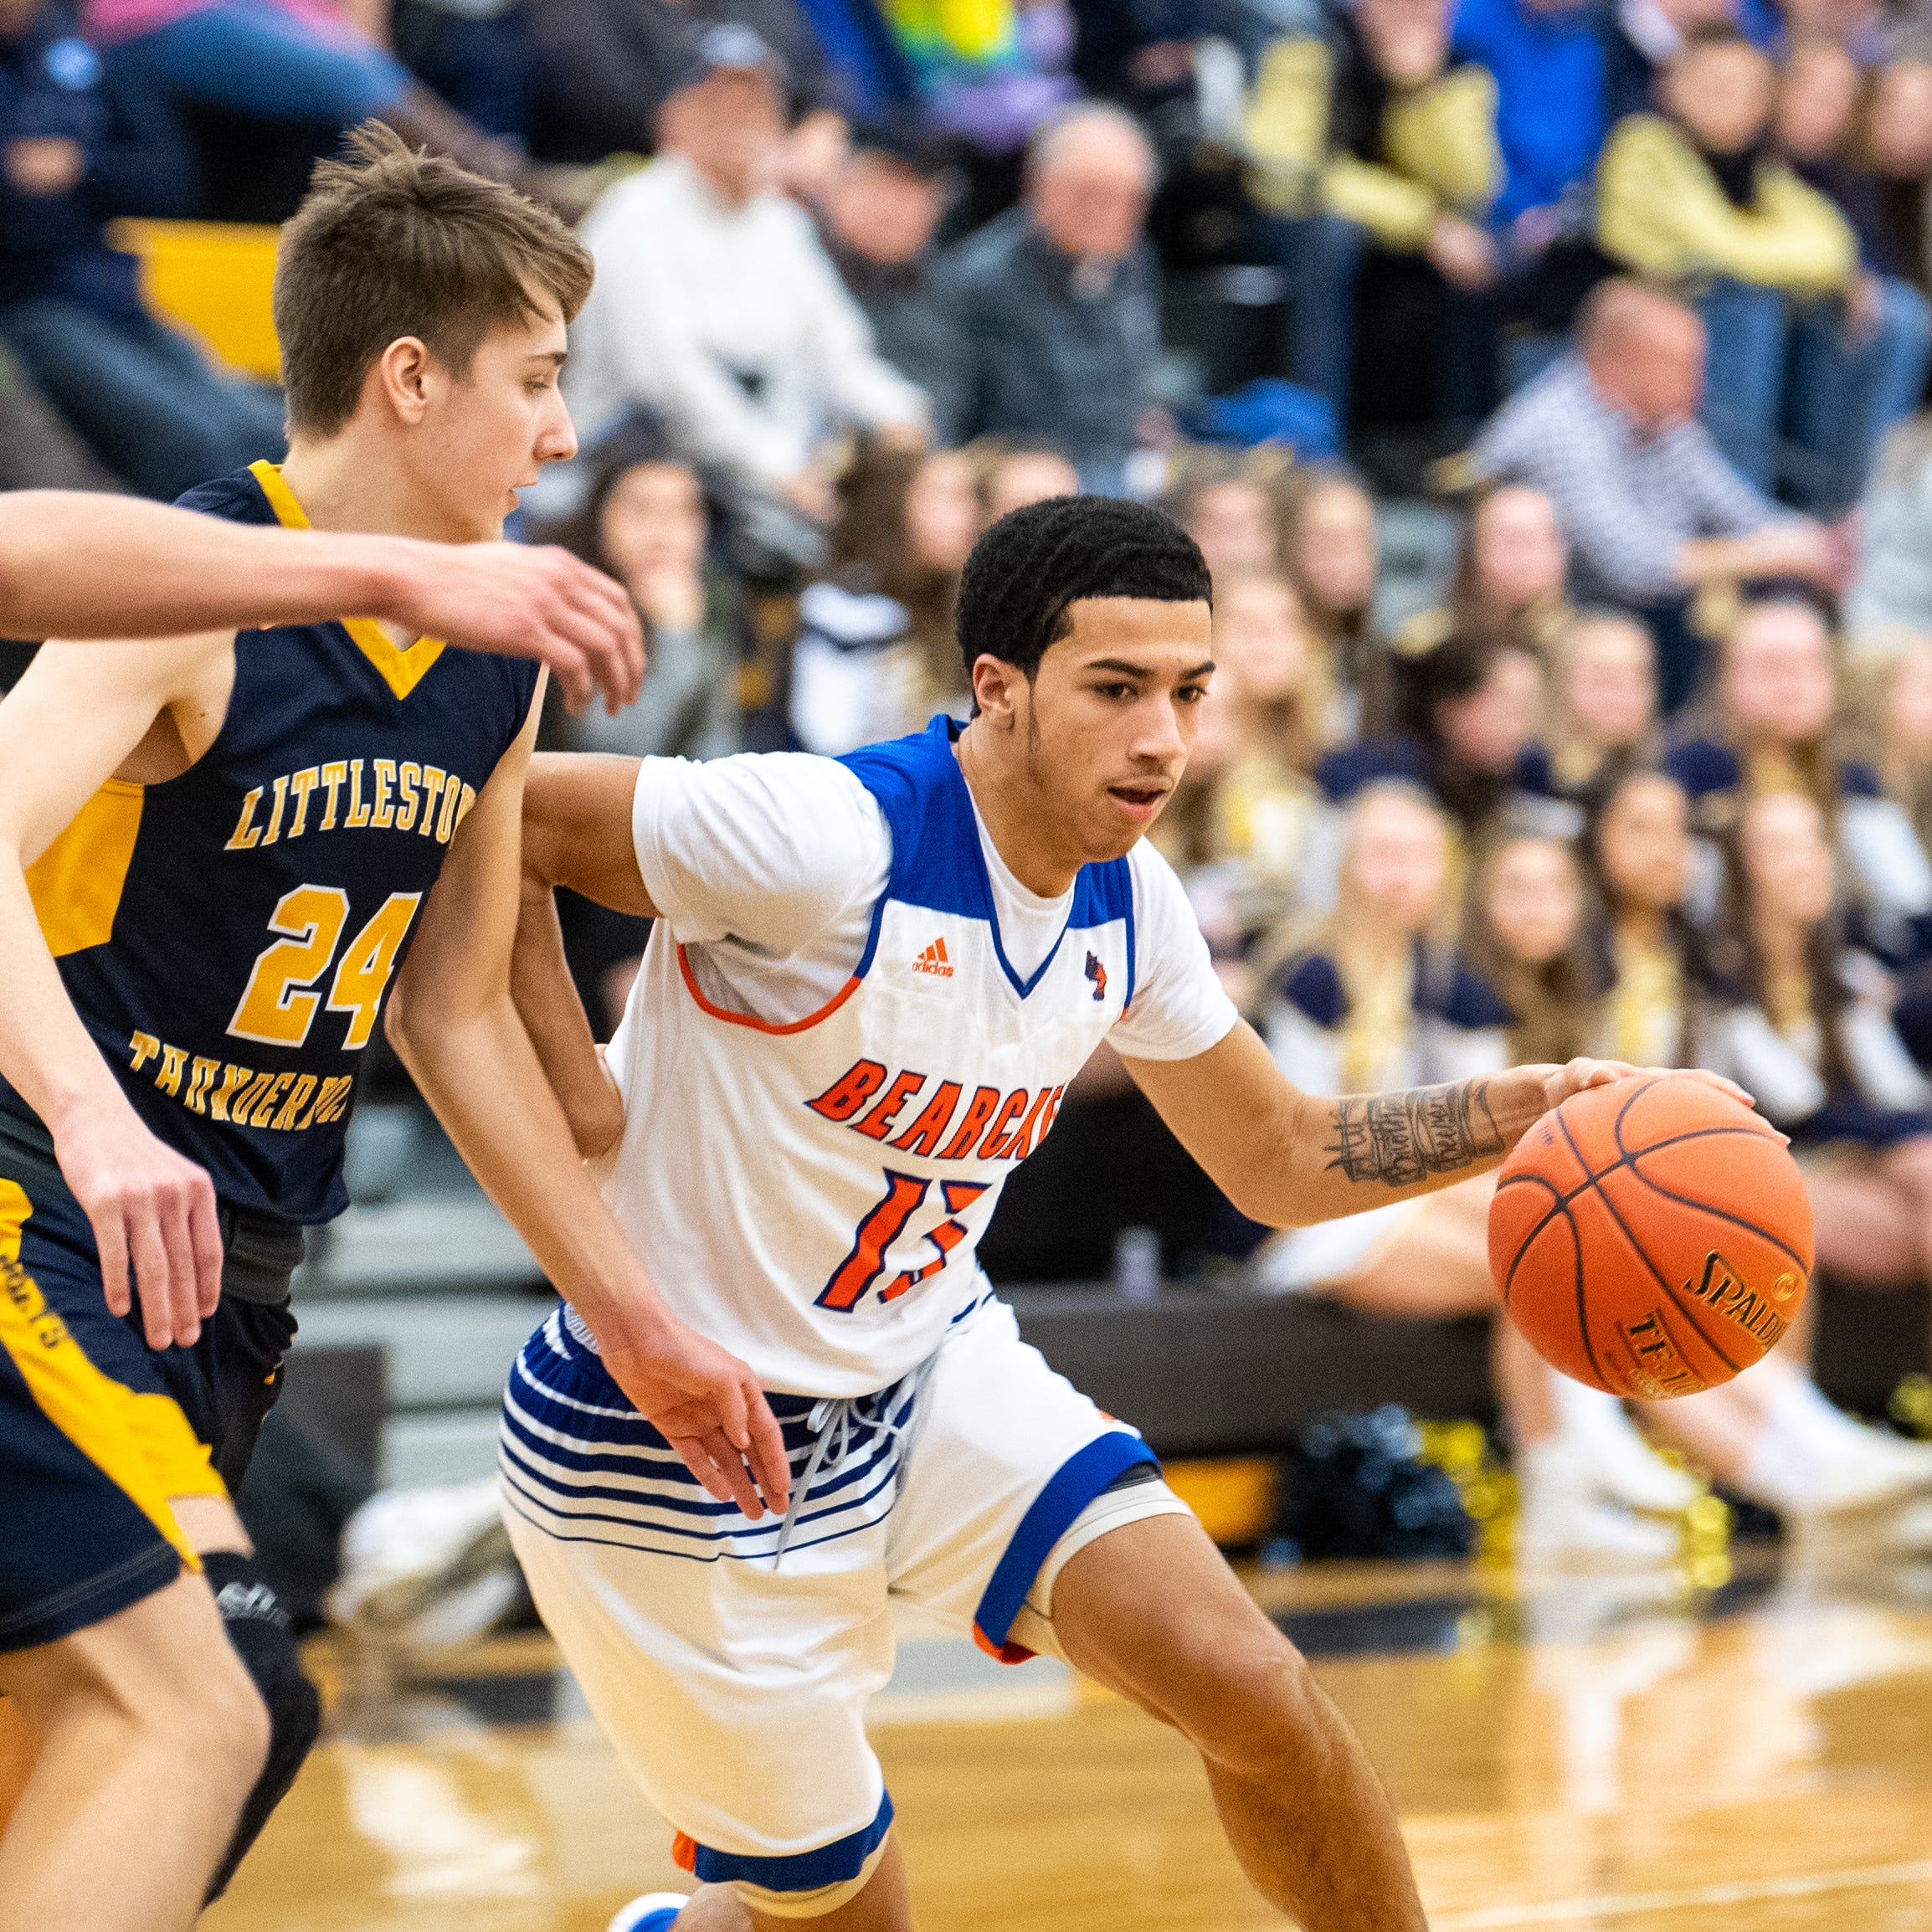 Rubber match: York High looking to reclaim YAIAA title against New Oxford